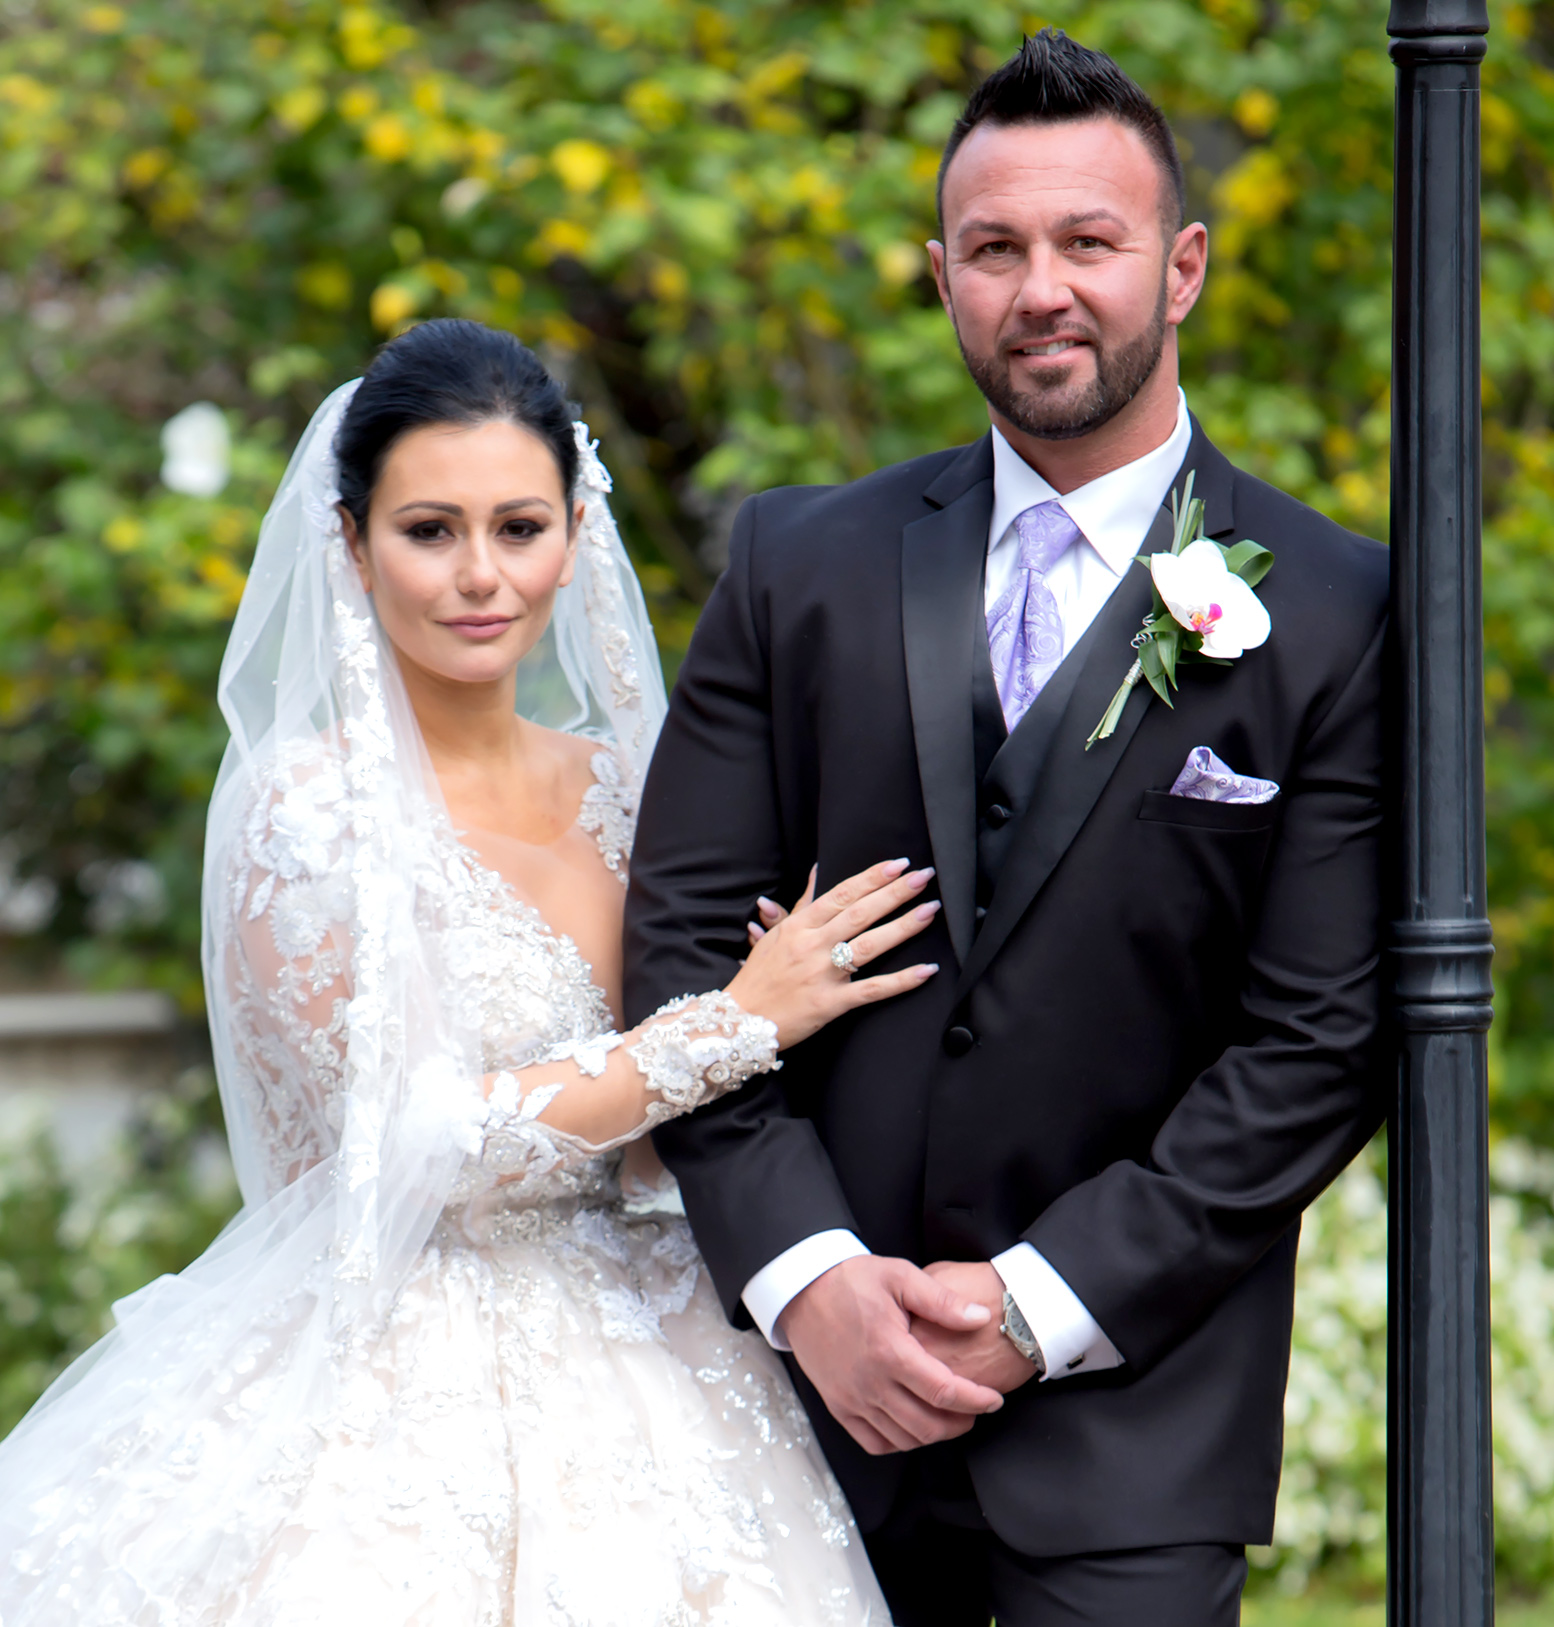 Jenni Farley and Roger Matthews get married on October 18